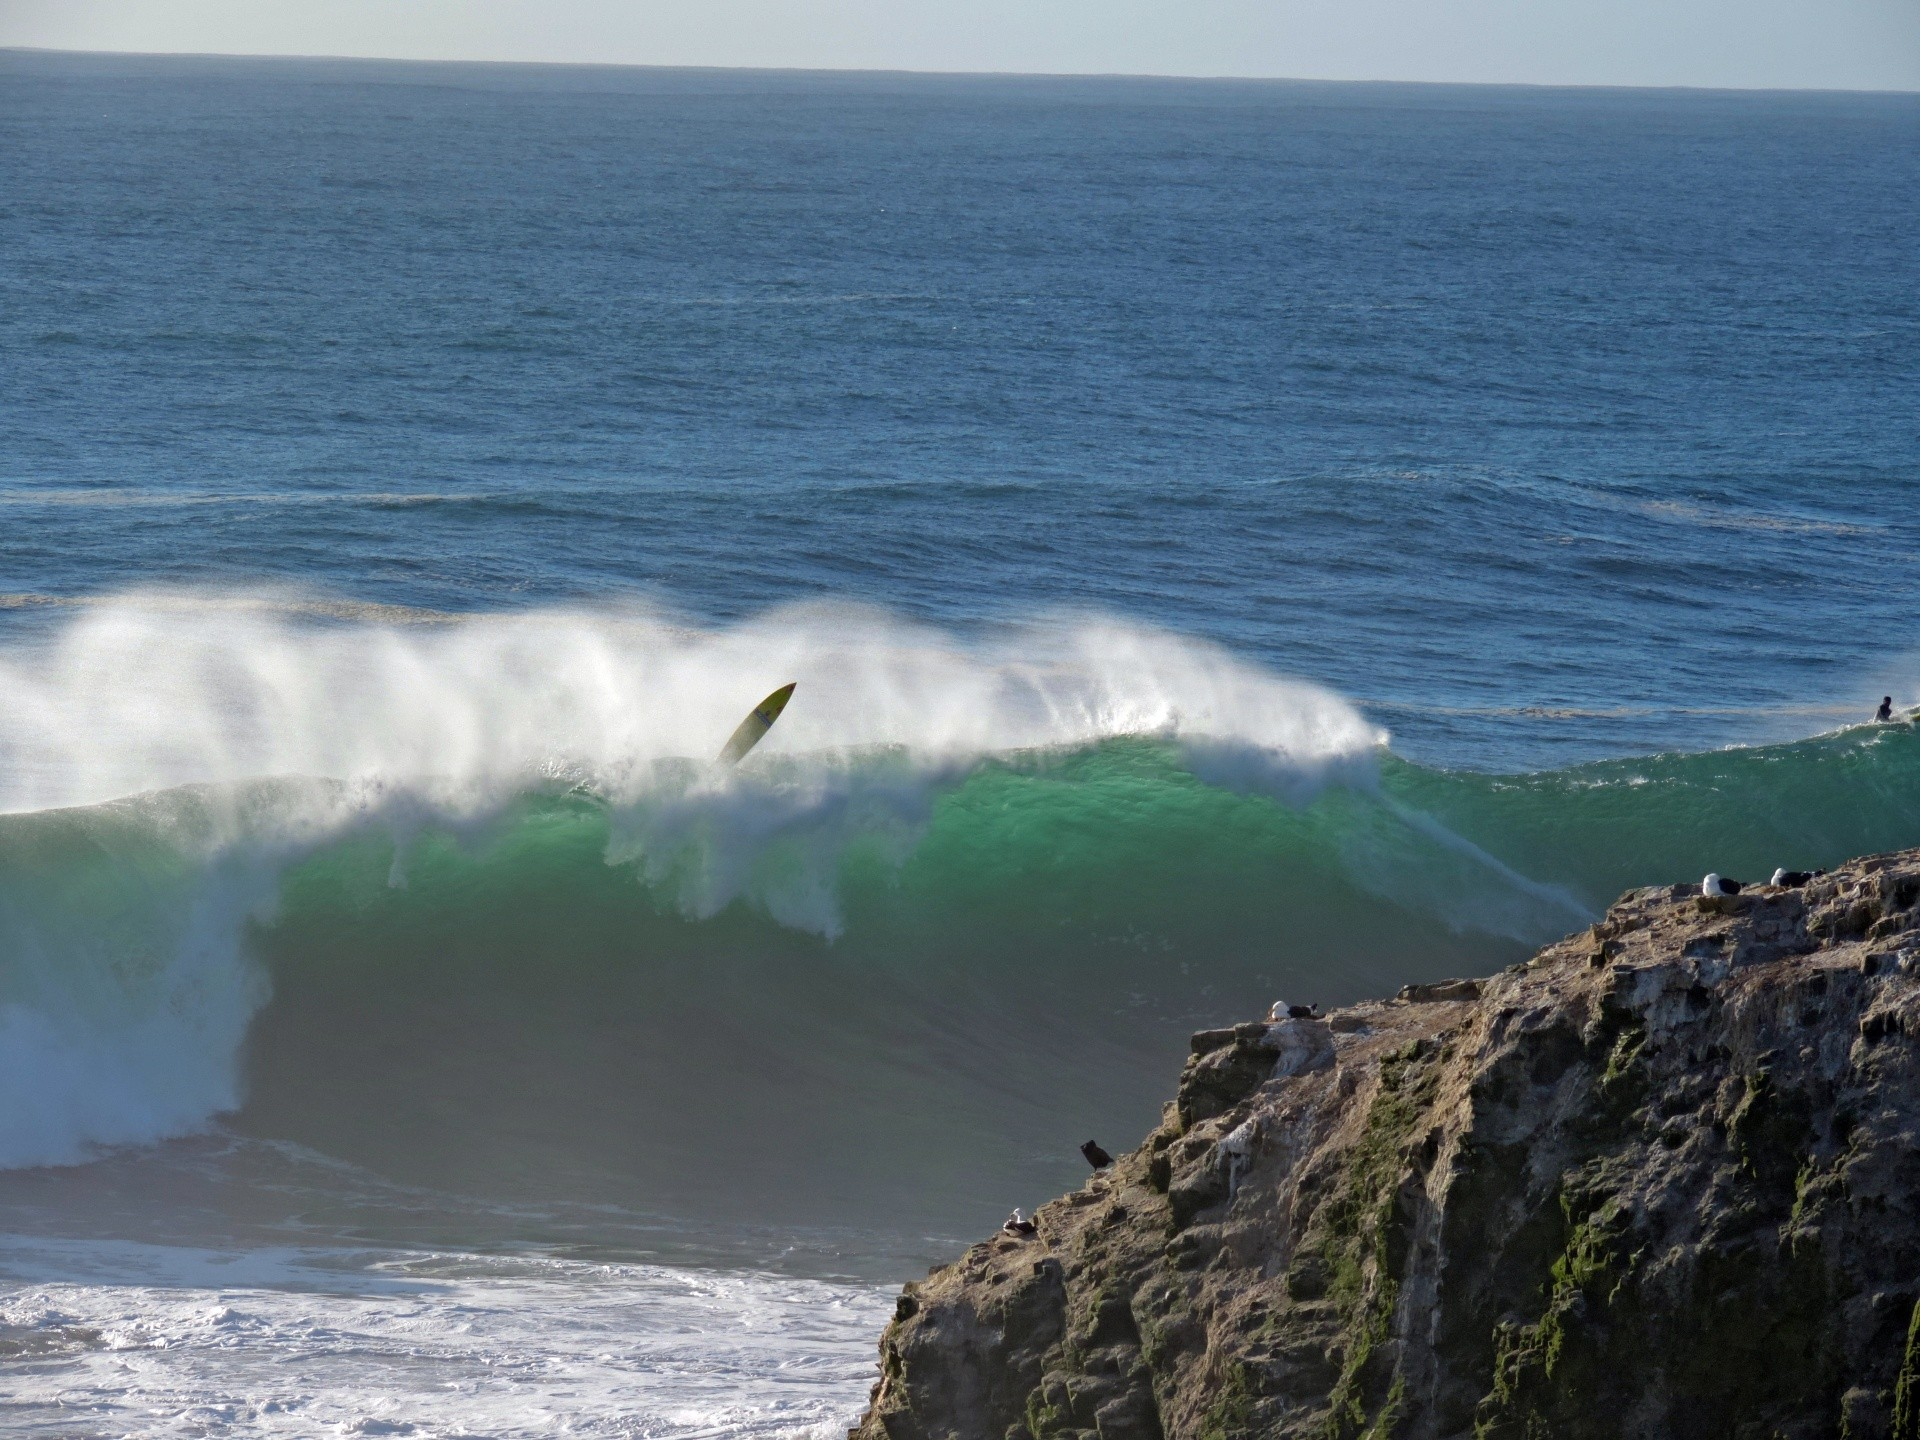 Winston Colvin's photo of Punta de Lobos